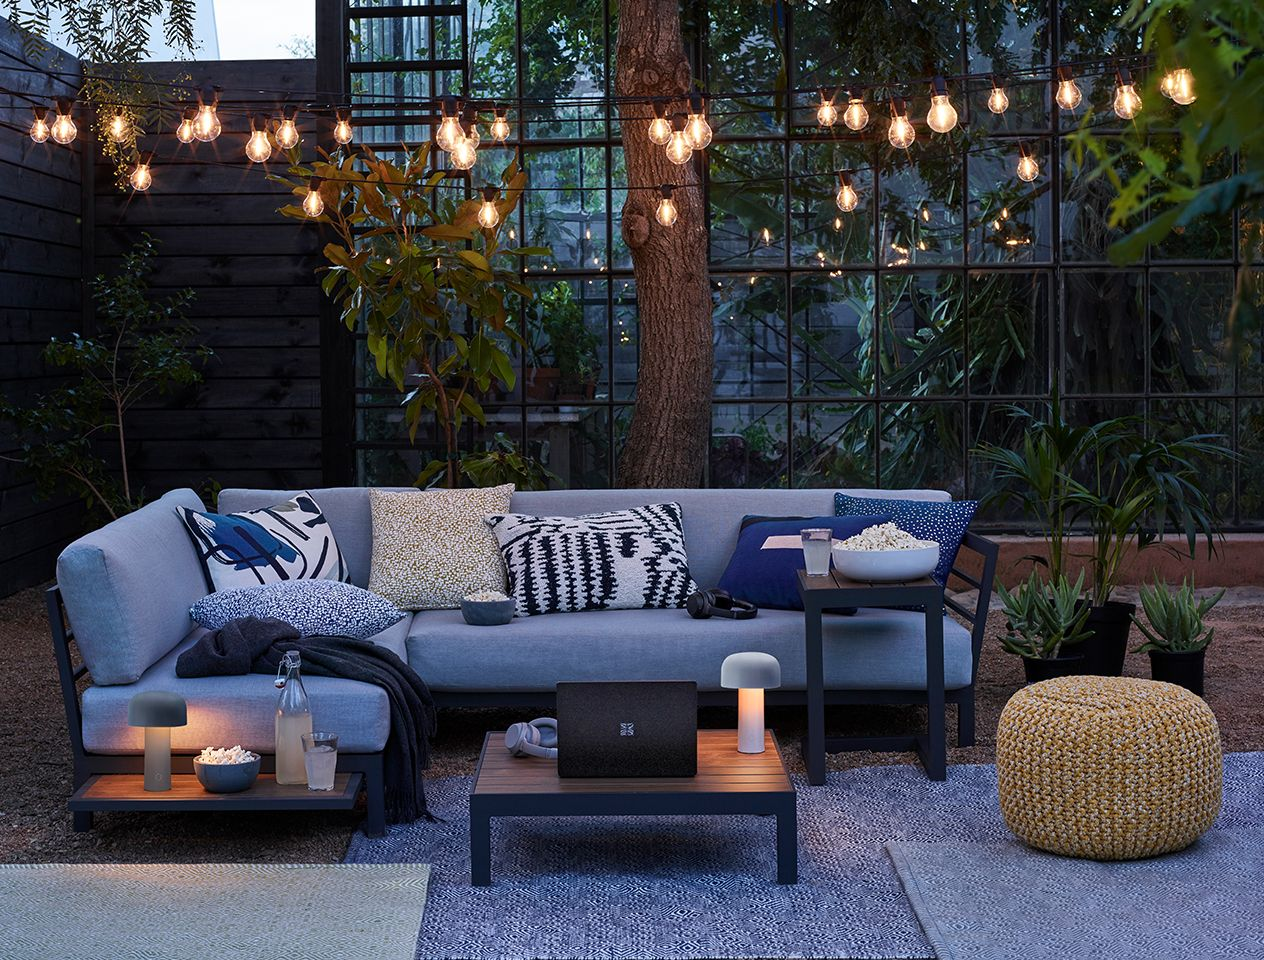 Bright outdoor living space